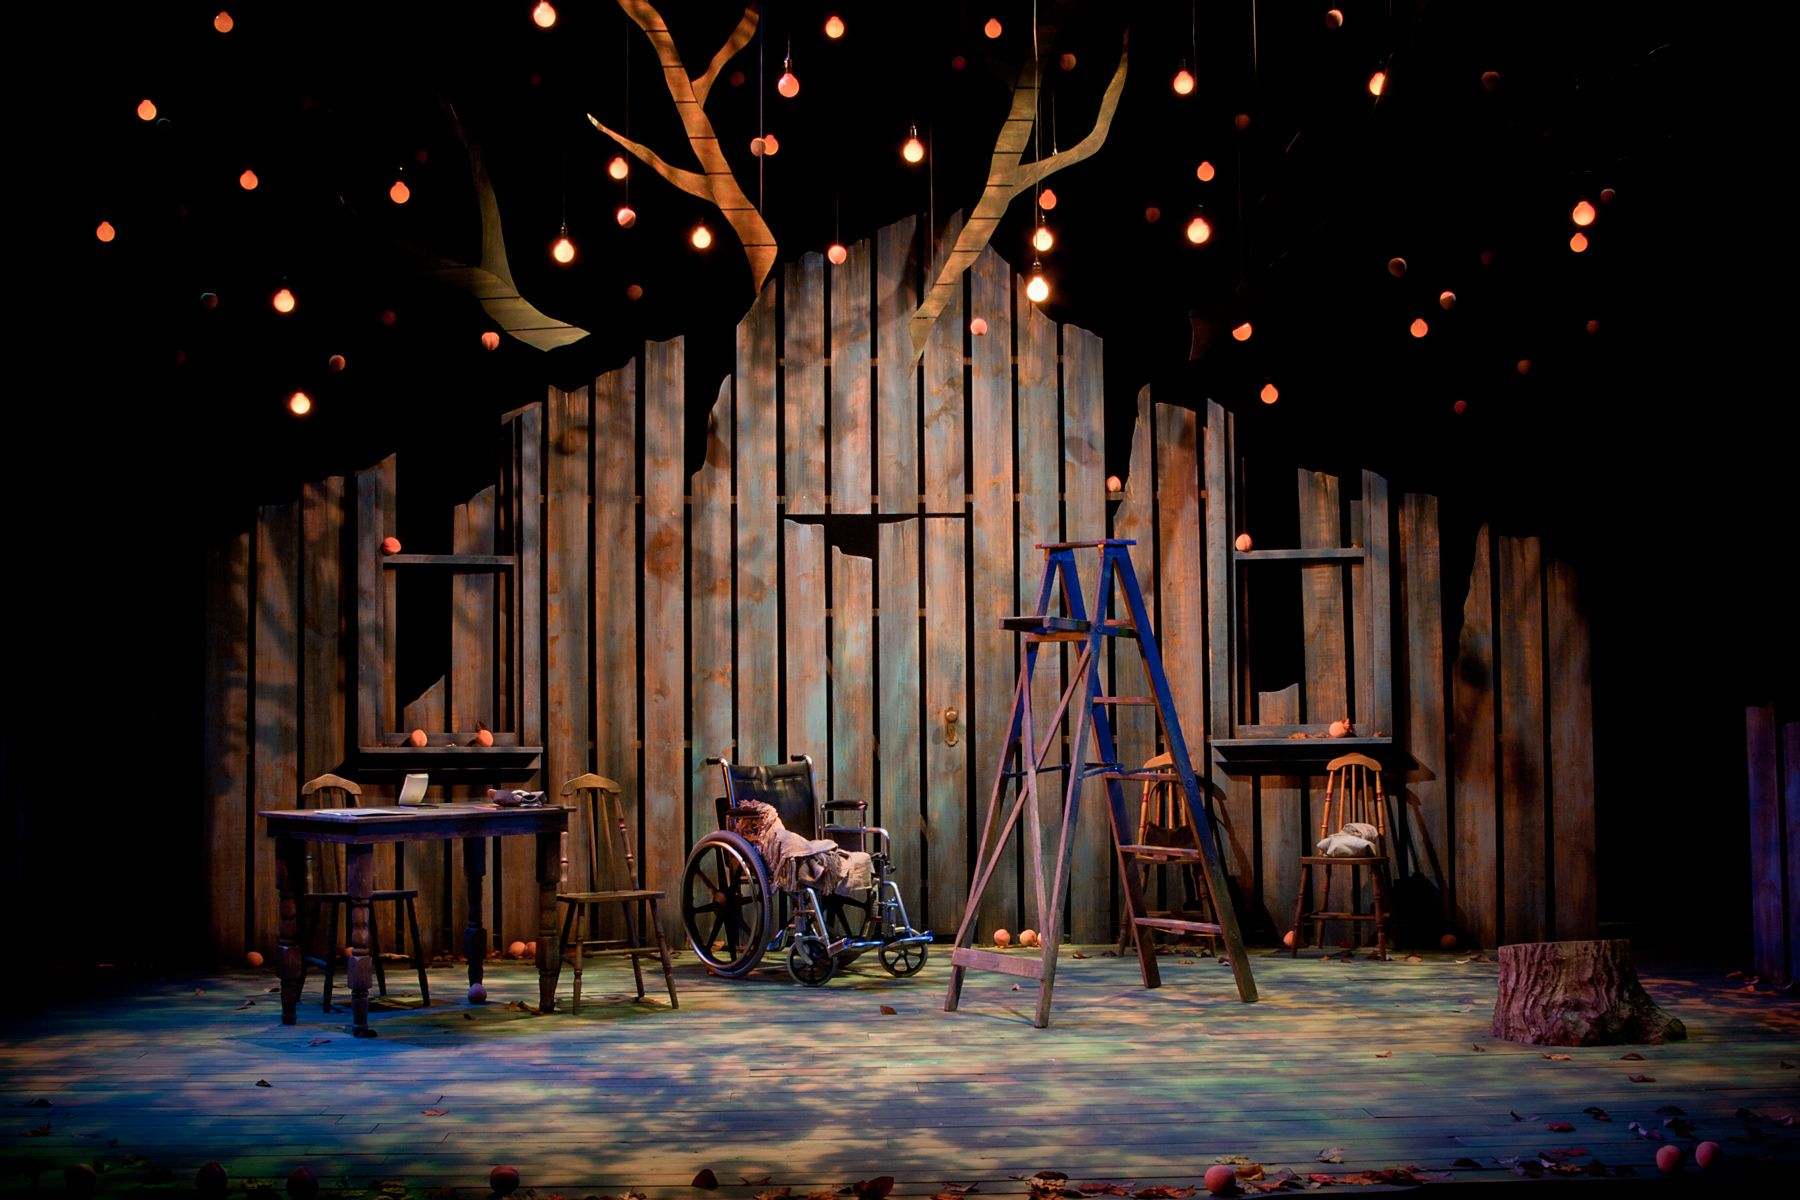 Pin By Stephen Clark On Stage Stage Lighting Design Stage Set Design Set Design Theatre